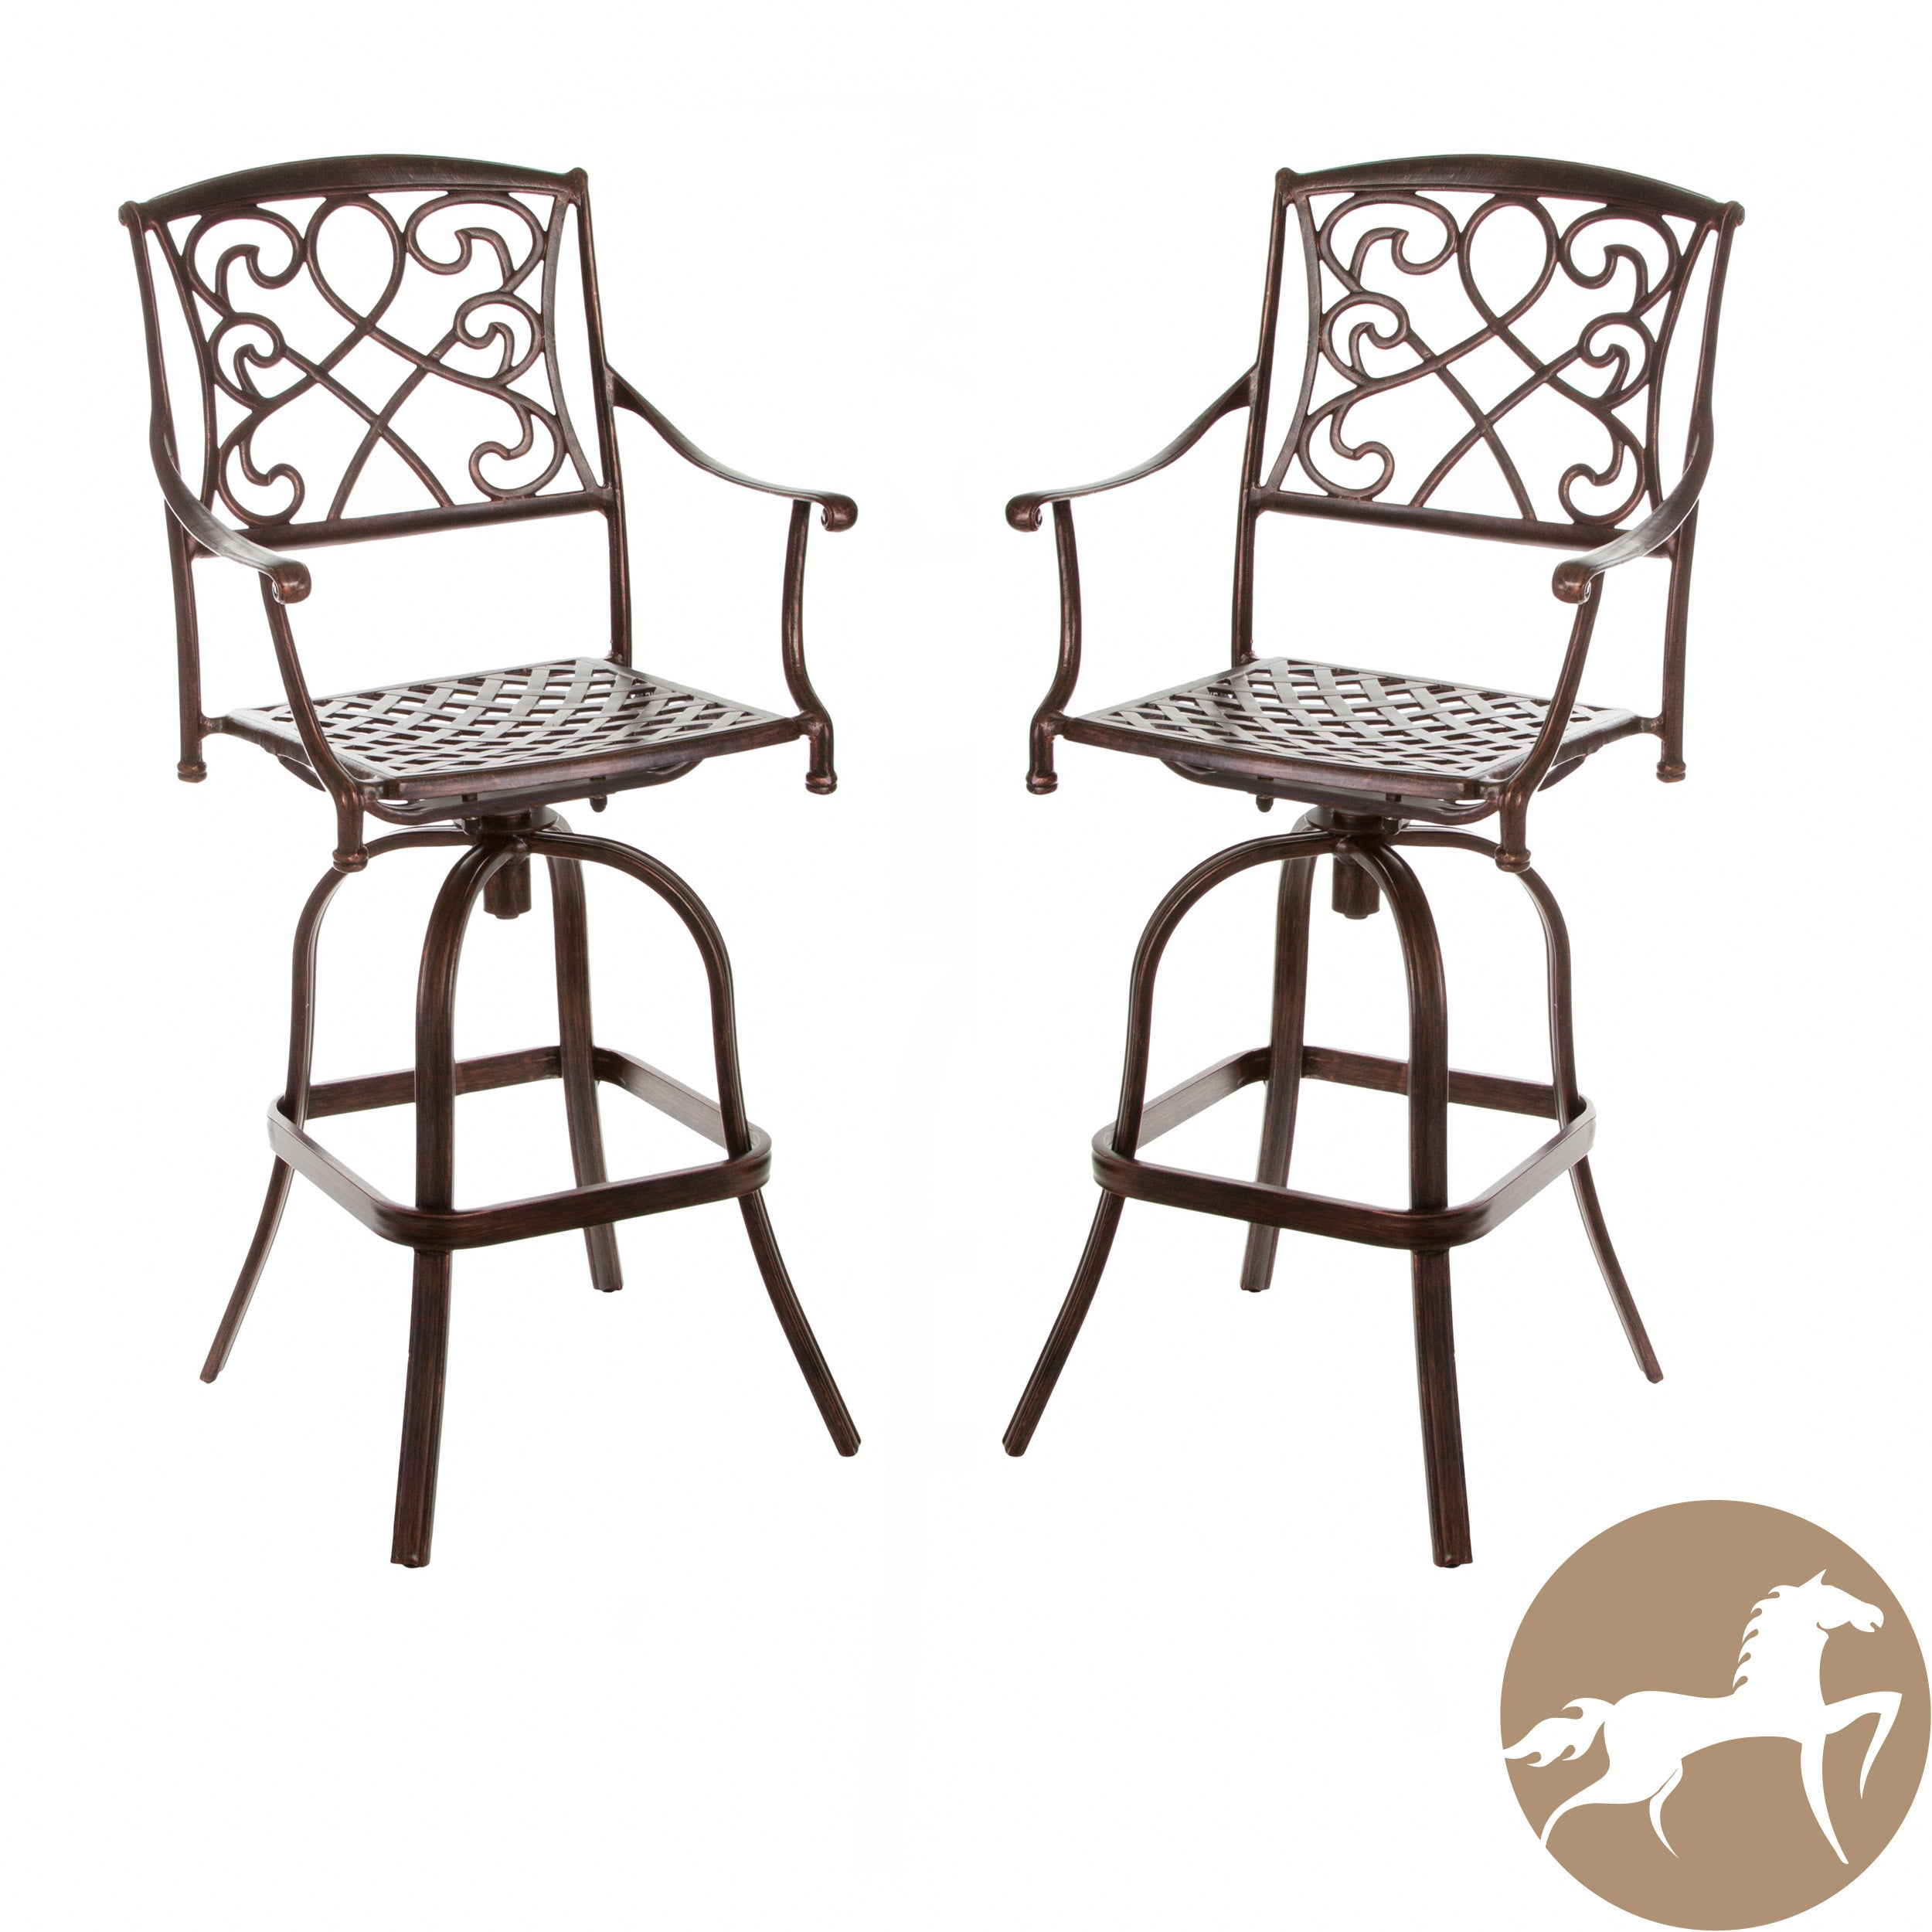 Christopher Knight Home Sahara Outdoor Bar Stools